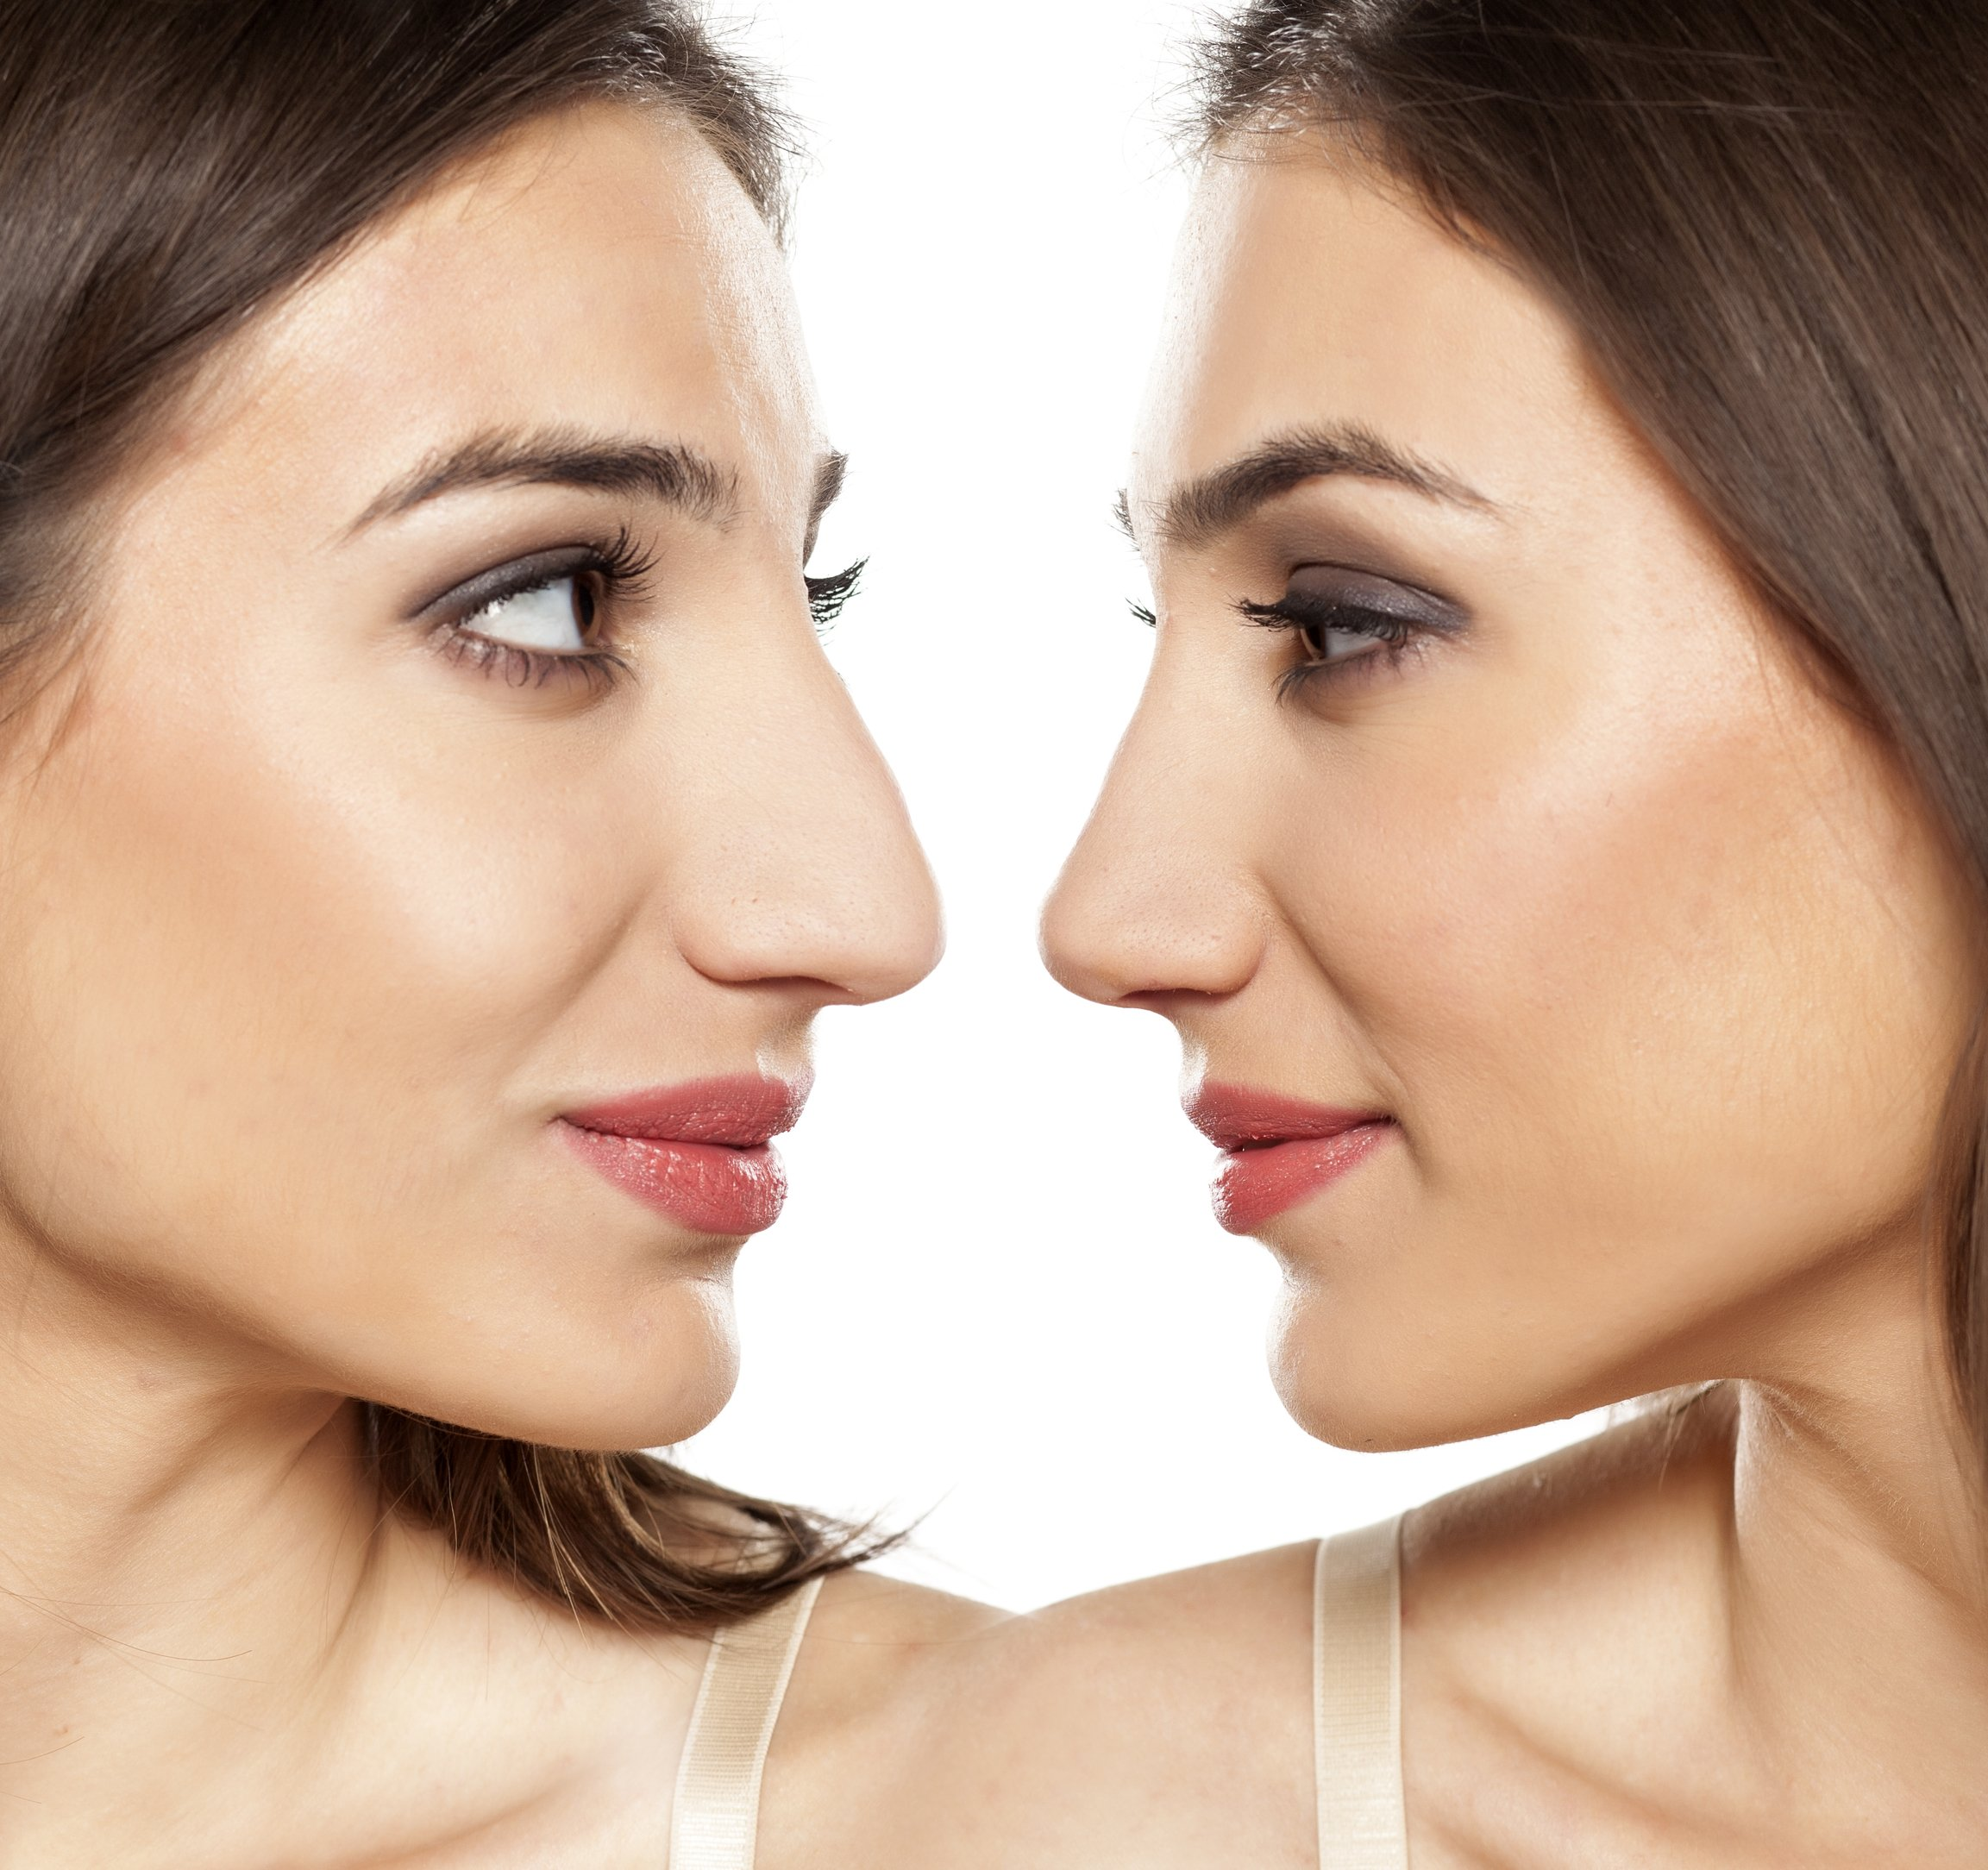 Before and after of tip rhinoplasty